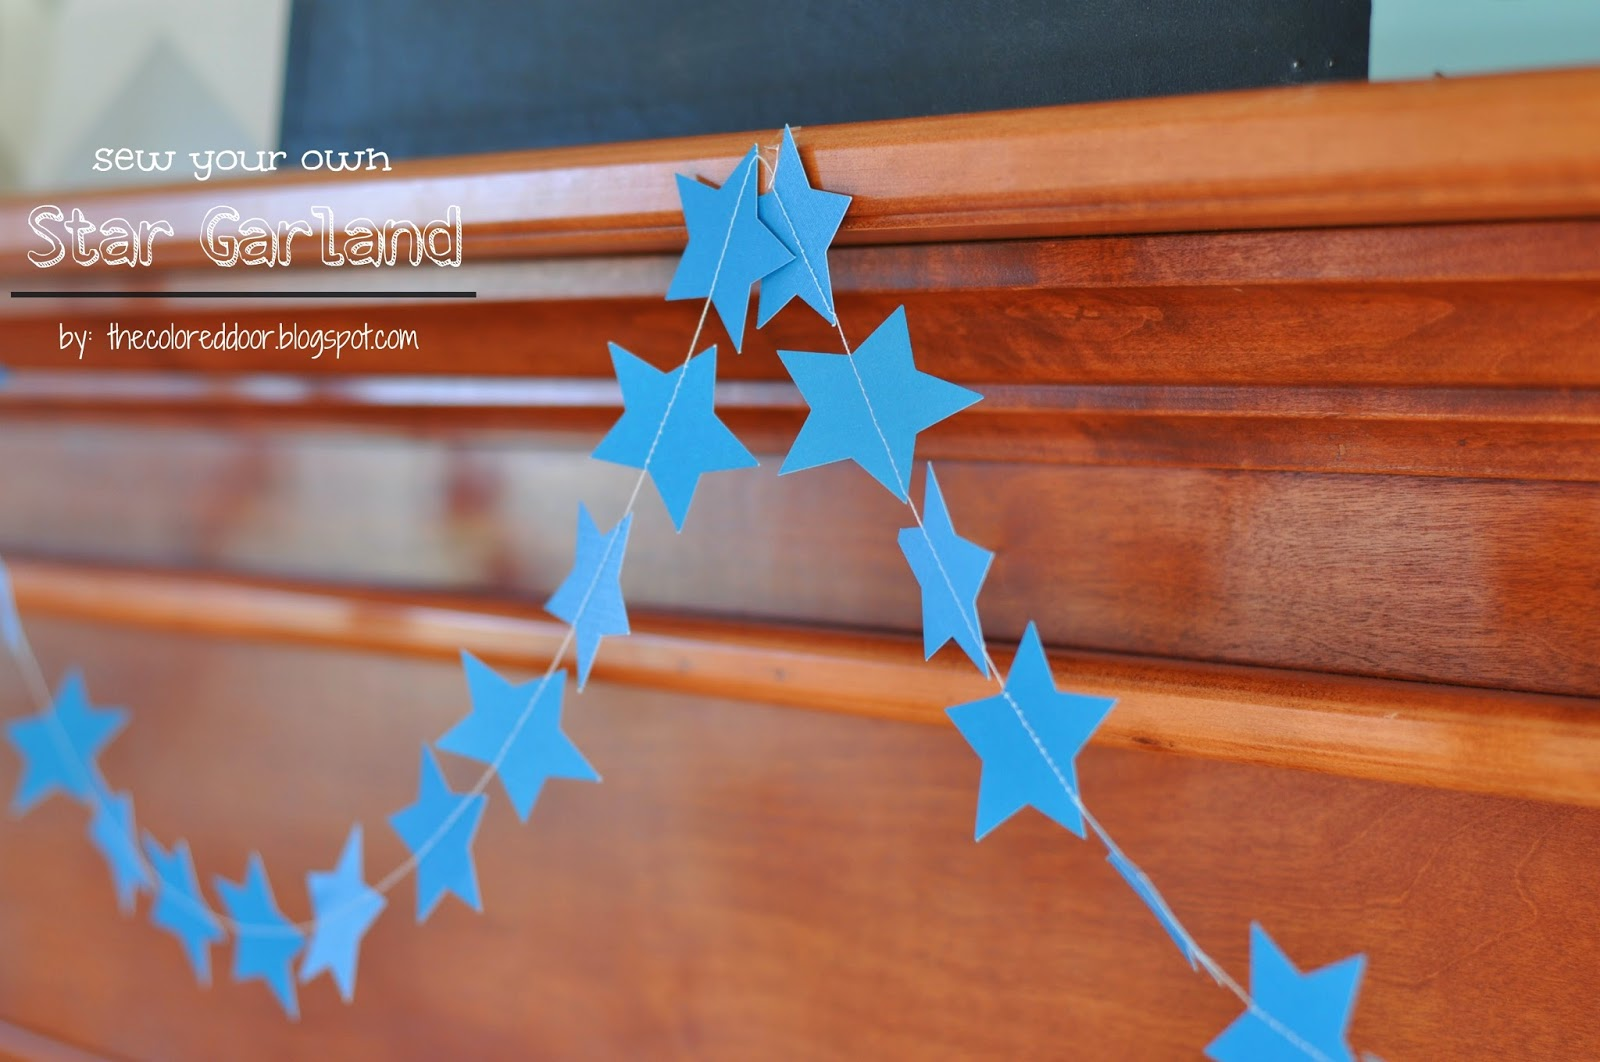 Sew your own star garland, prefect for the summer holidays - the colored door